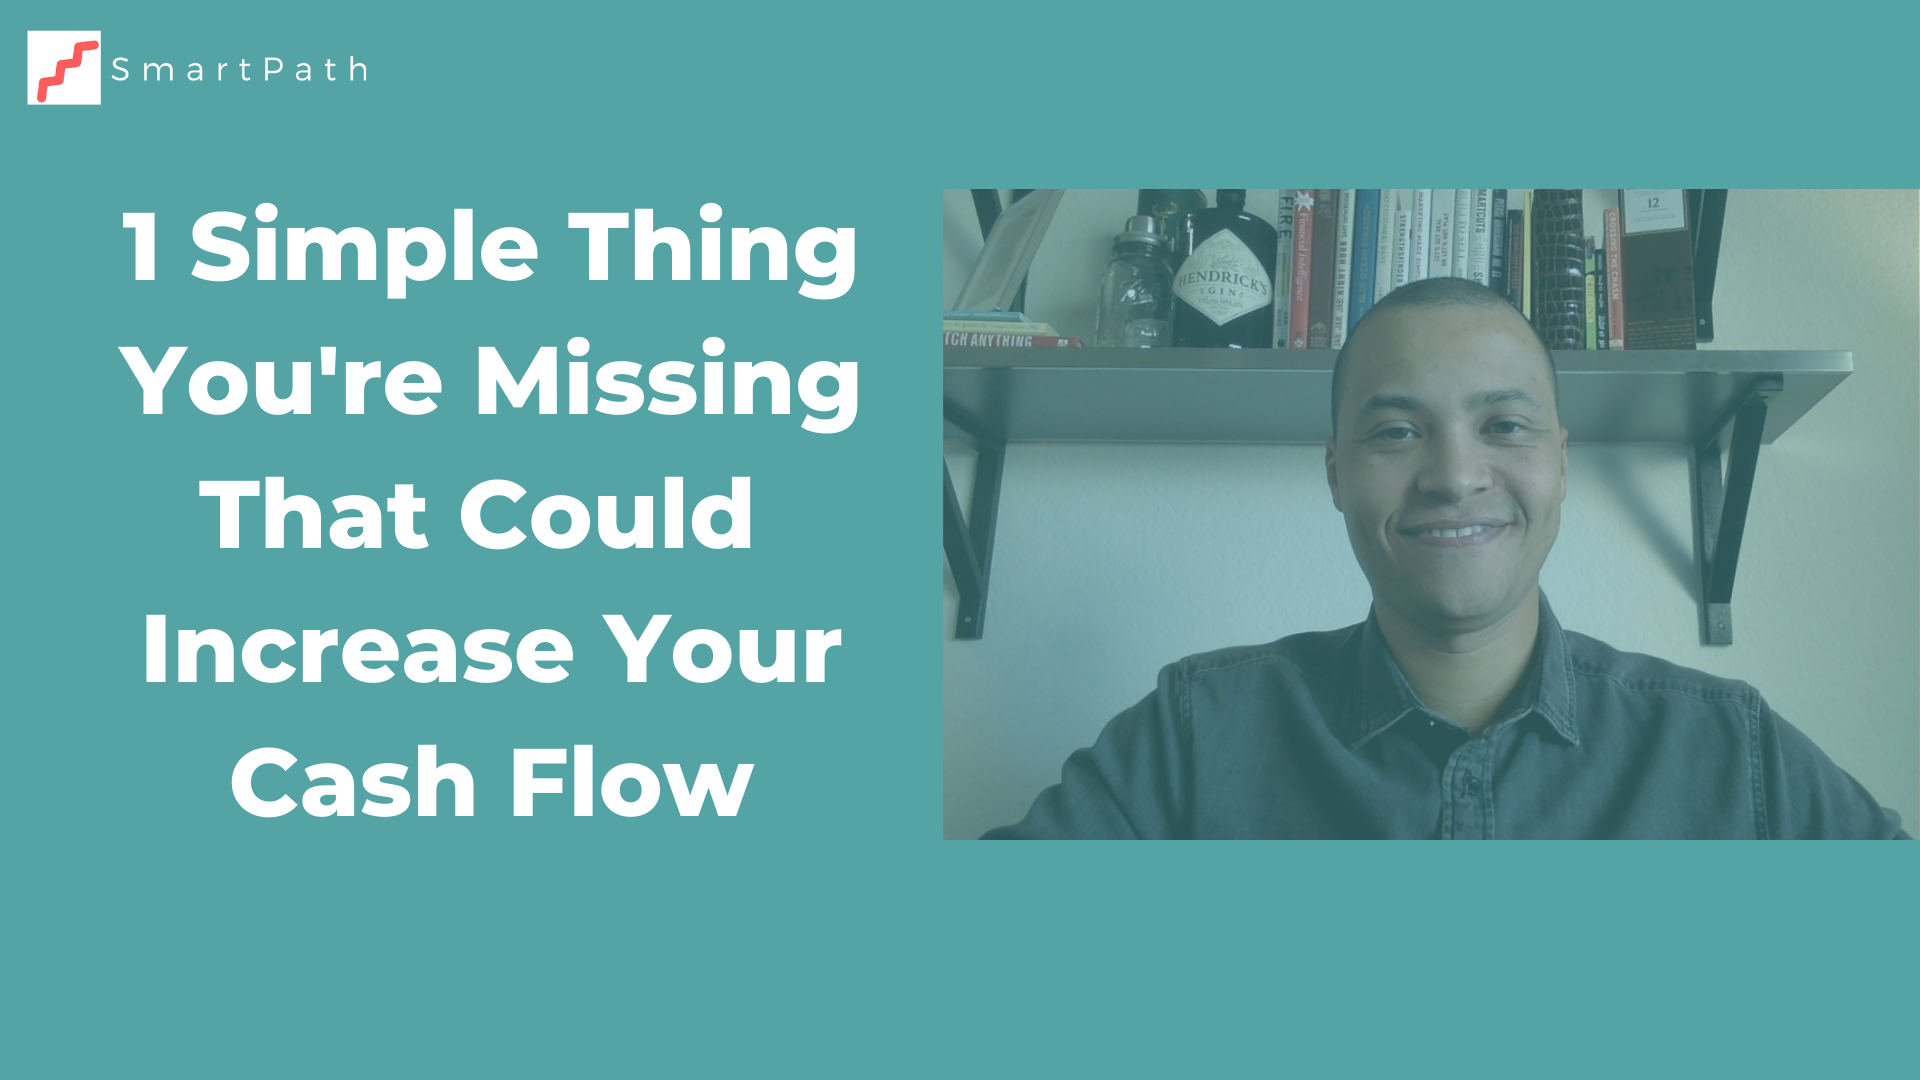 One simple thing you're missing that could increase your cash flow